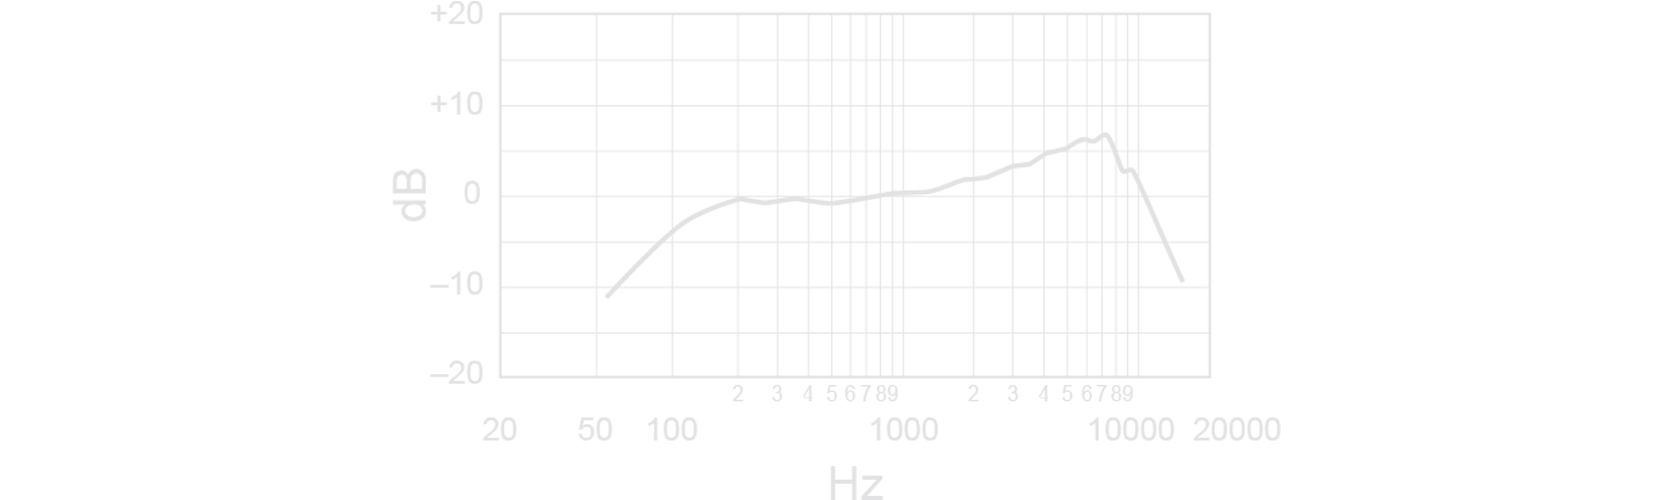 Shure SM48 Cardioid Dynamic Vocal Microphone Frequency Response Curve Image